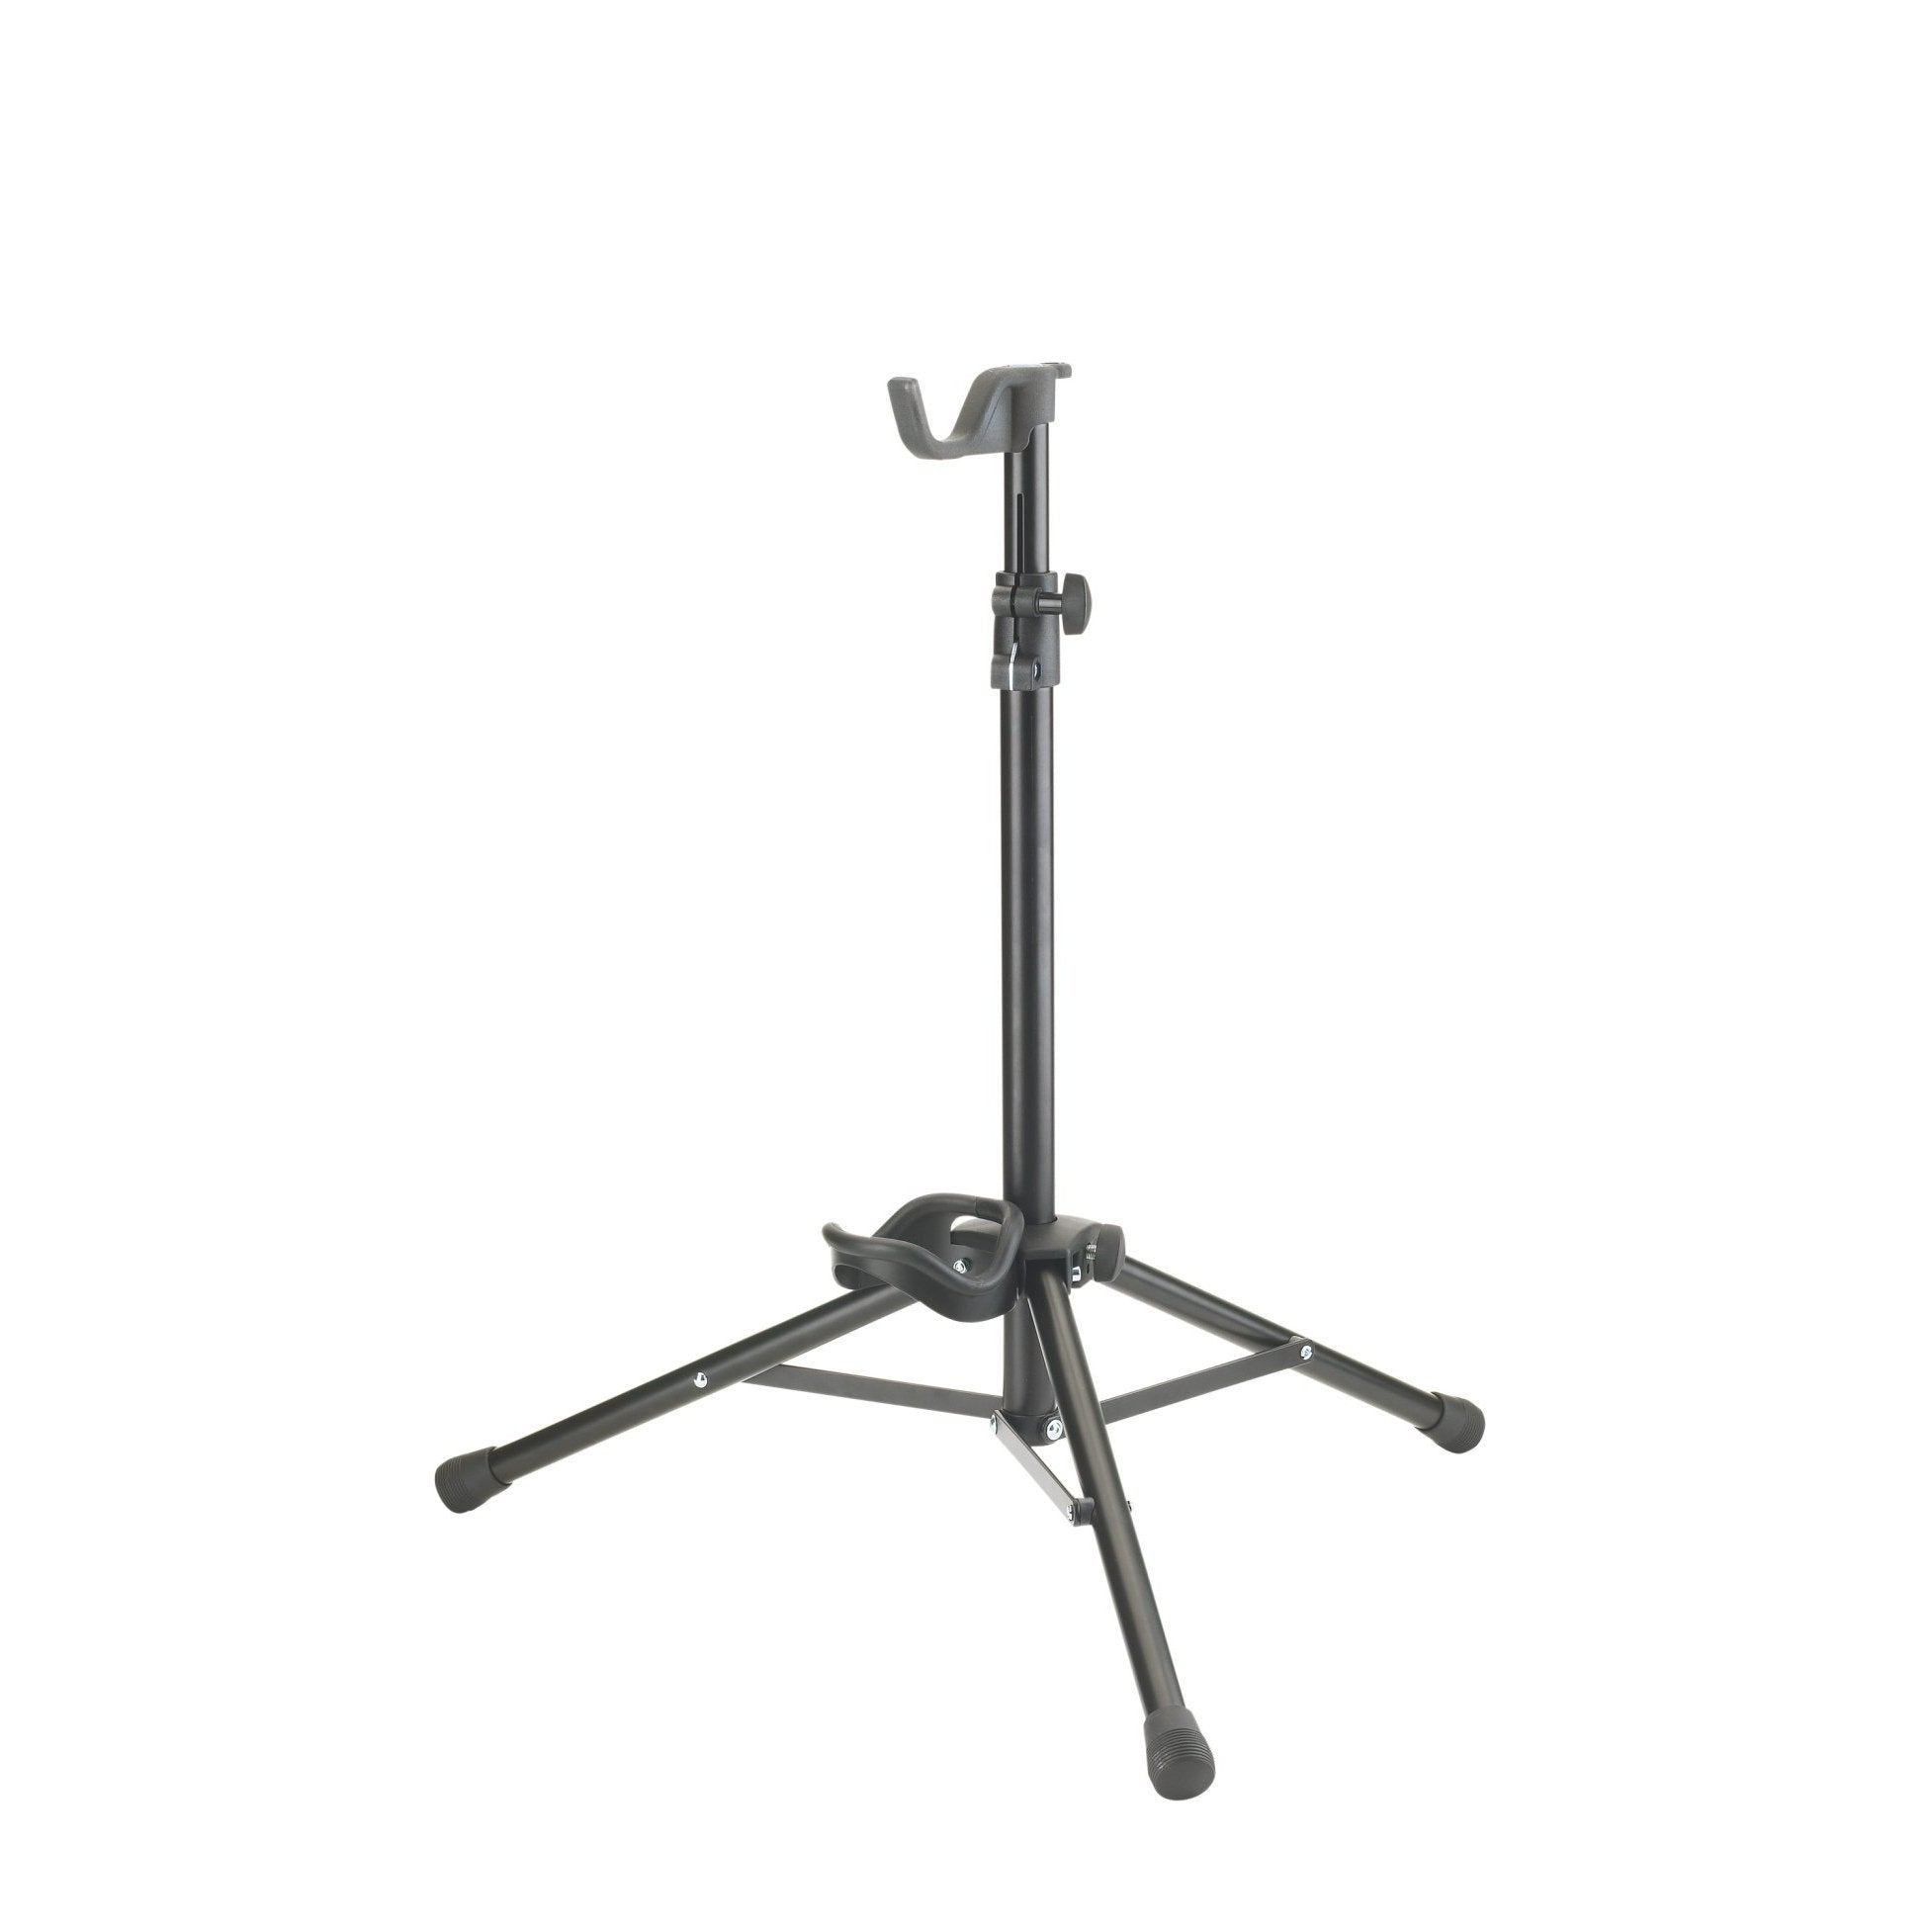 König & Meyer - 149/2 Tenor Horn Stand-Instrument Stand-König & Meyer-Music Elements